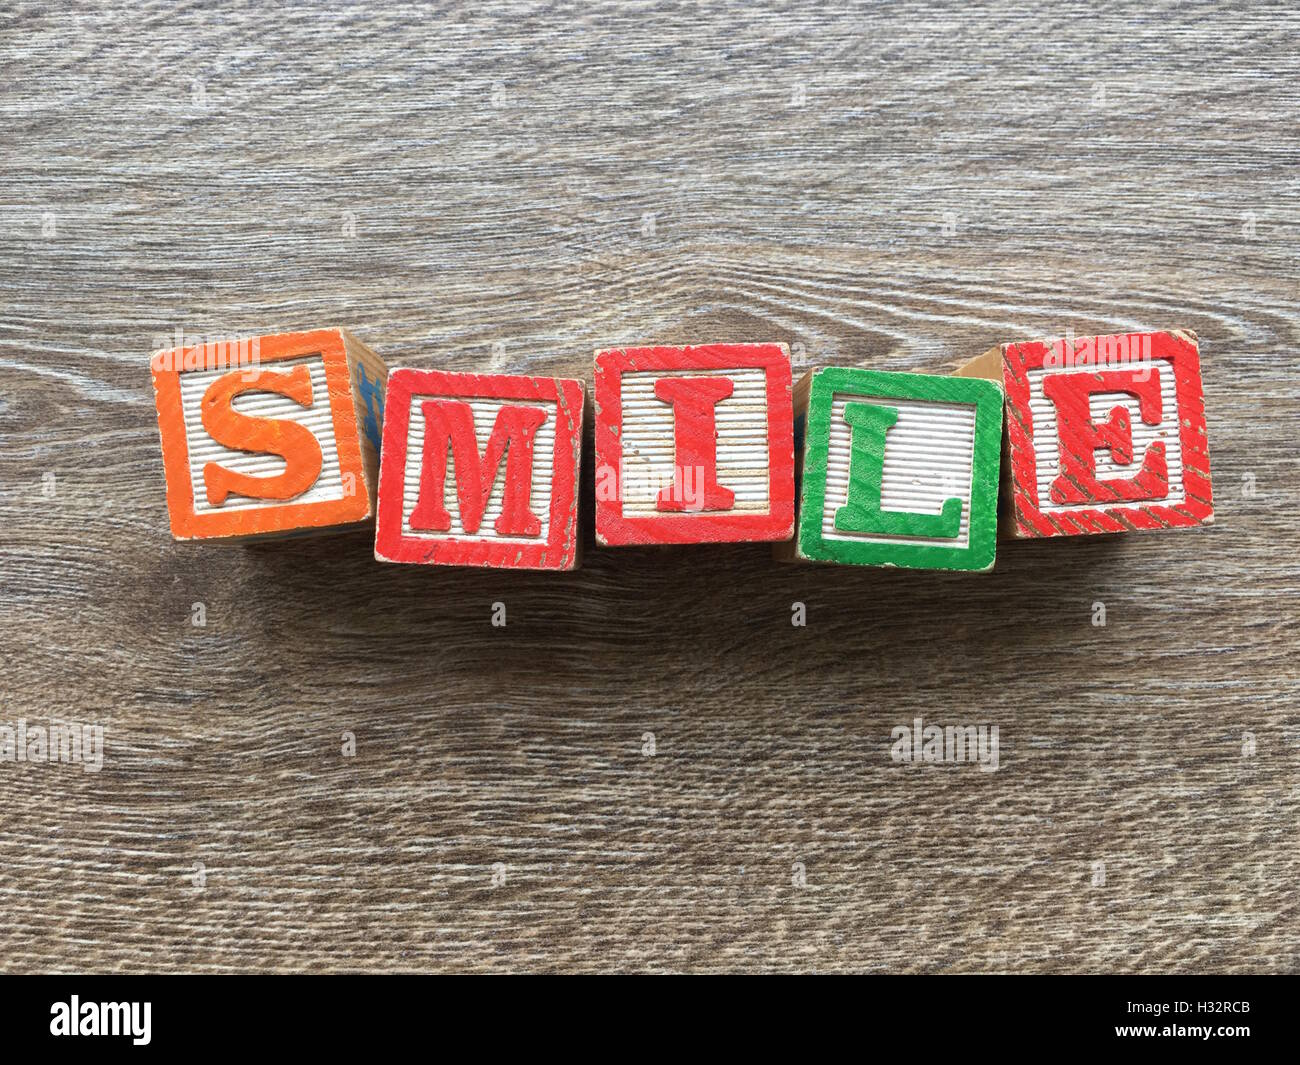 Alphabet wood block letters forming the word SMILE , it is a